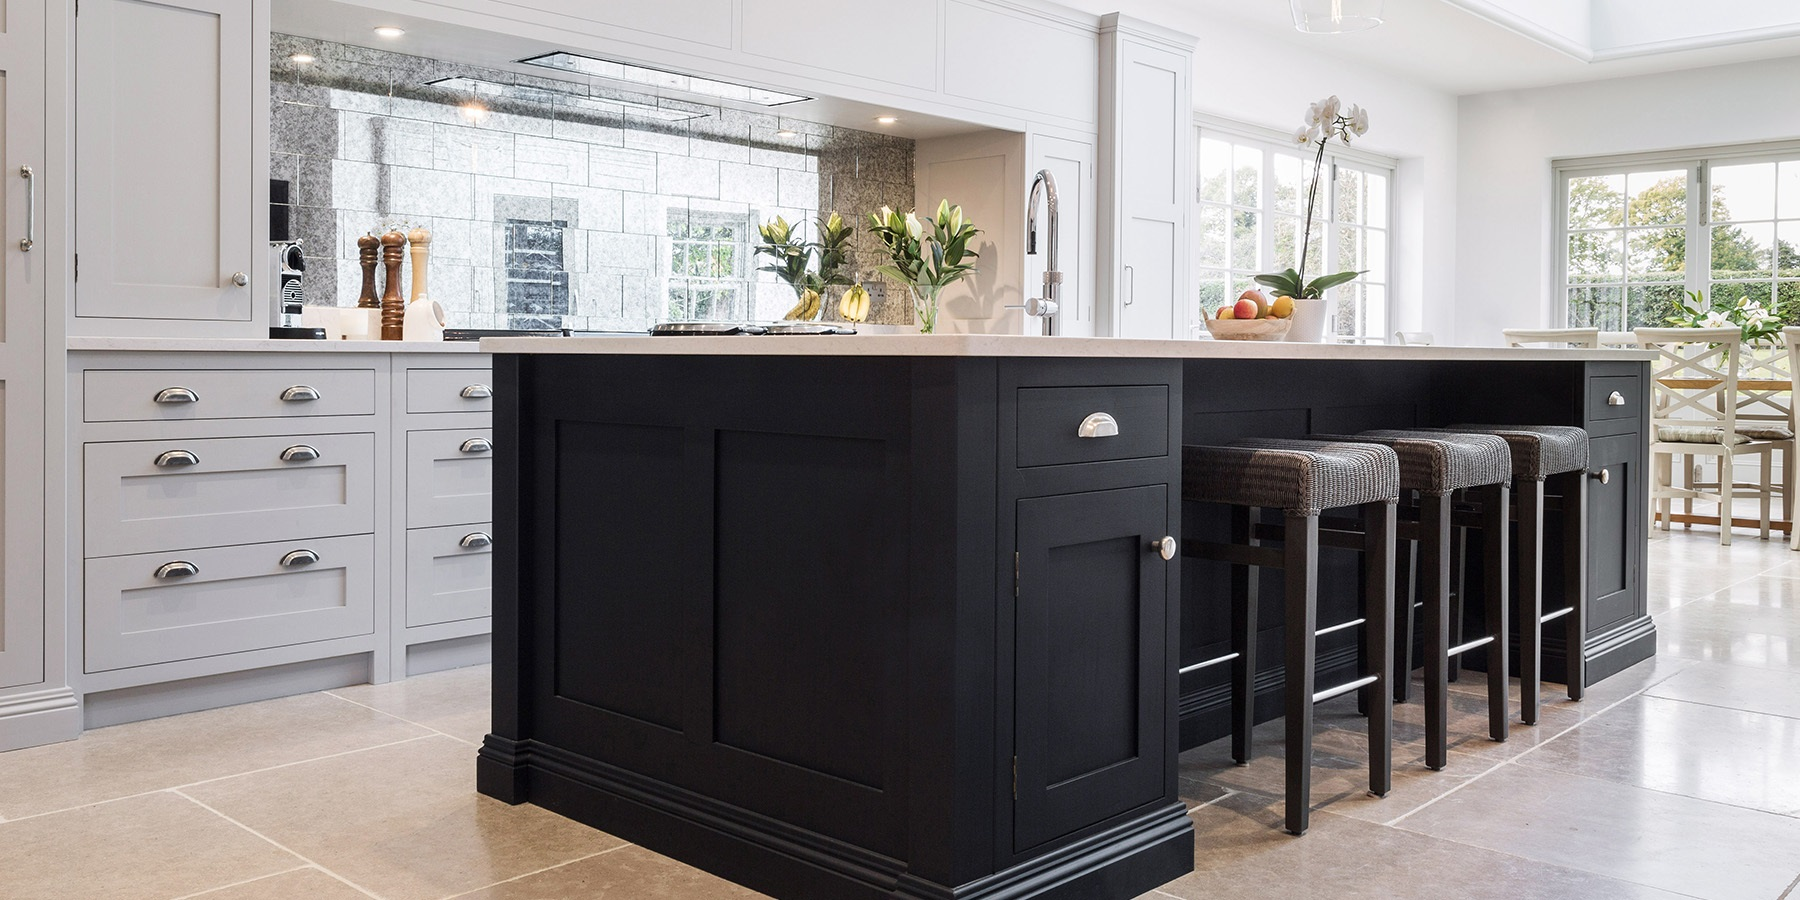 Luxury Large Kitchen Island - Burlanes bespoke Wellsdown kitchen with large central kitchen island and white worktops.